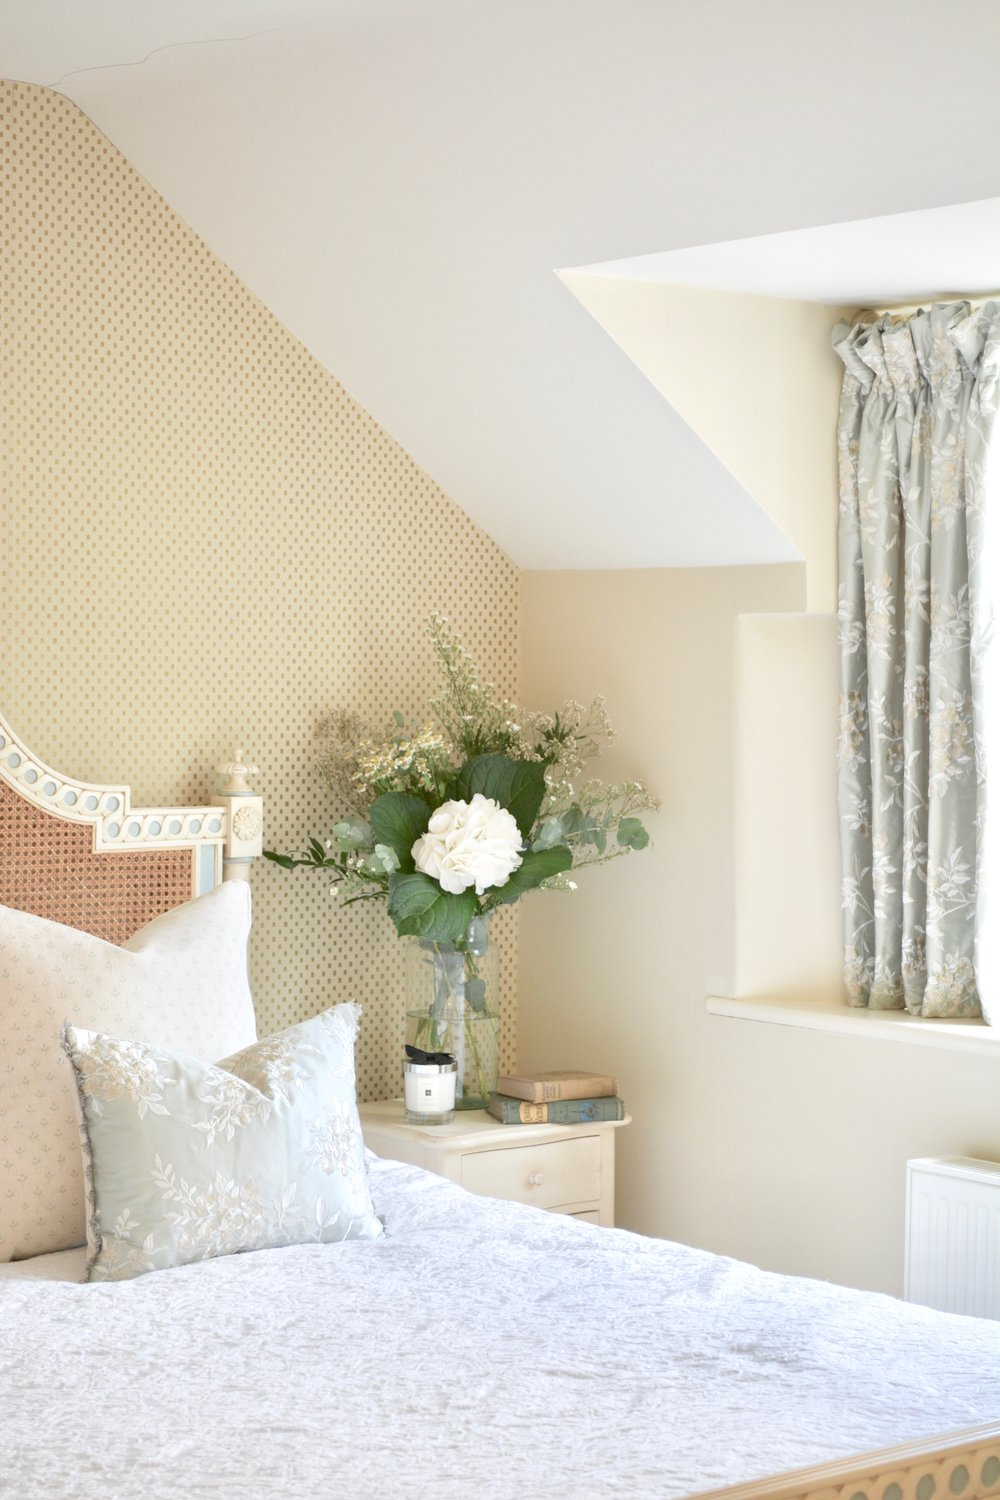 Country Cottage Bedroom Designed by Hannah Llewelyn Interior Design www.hlinteriors.co.uk.jpg